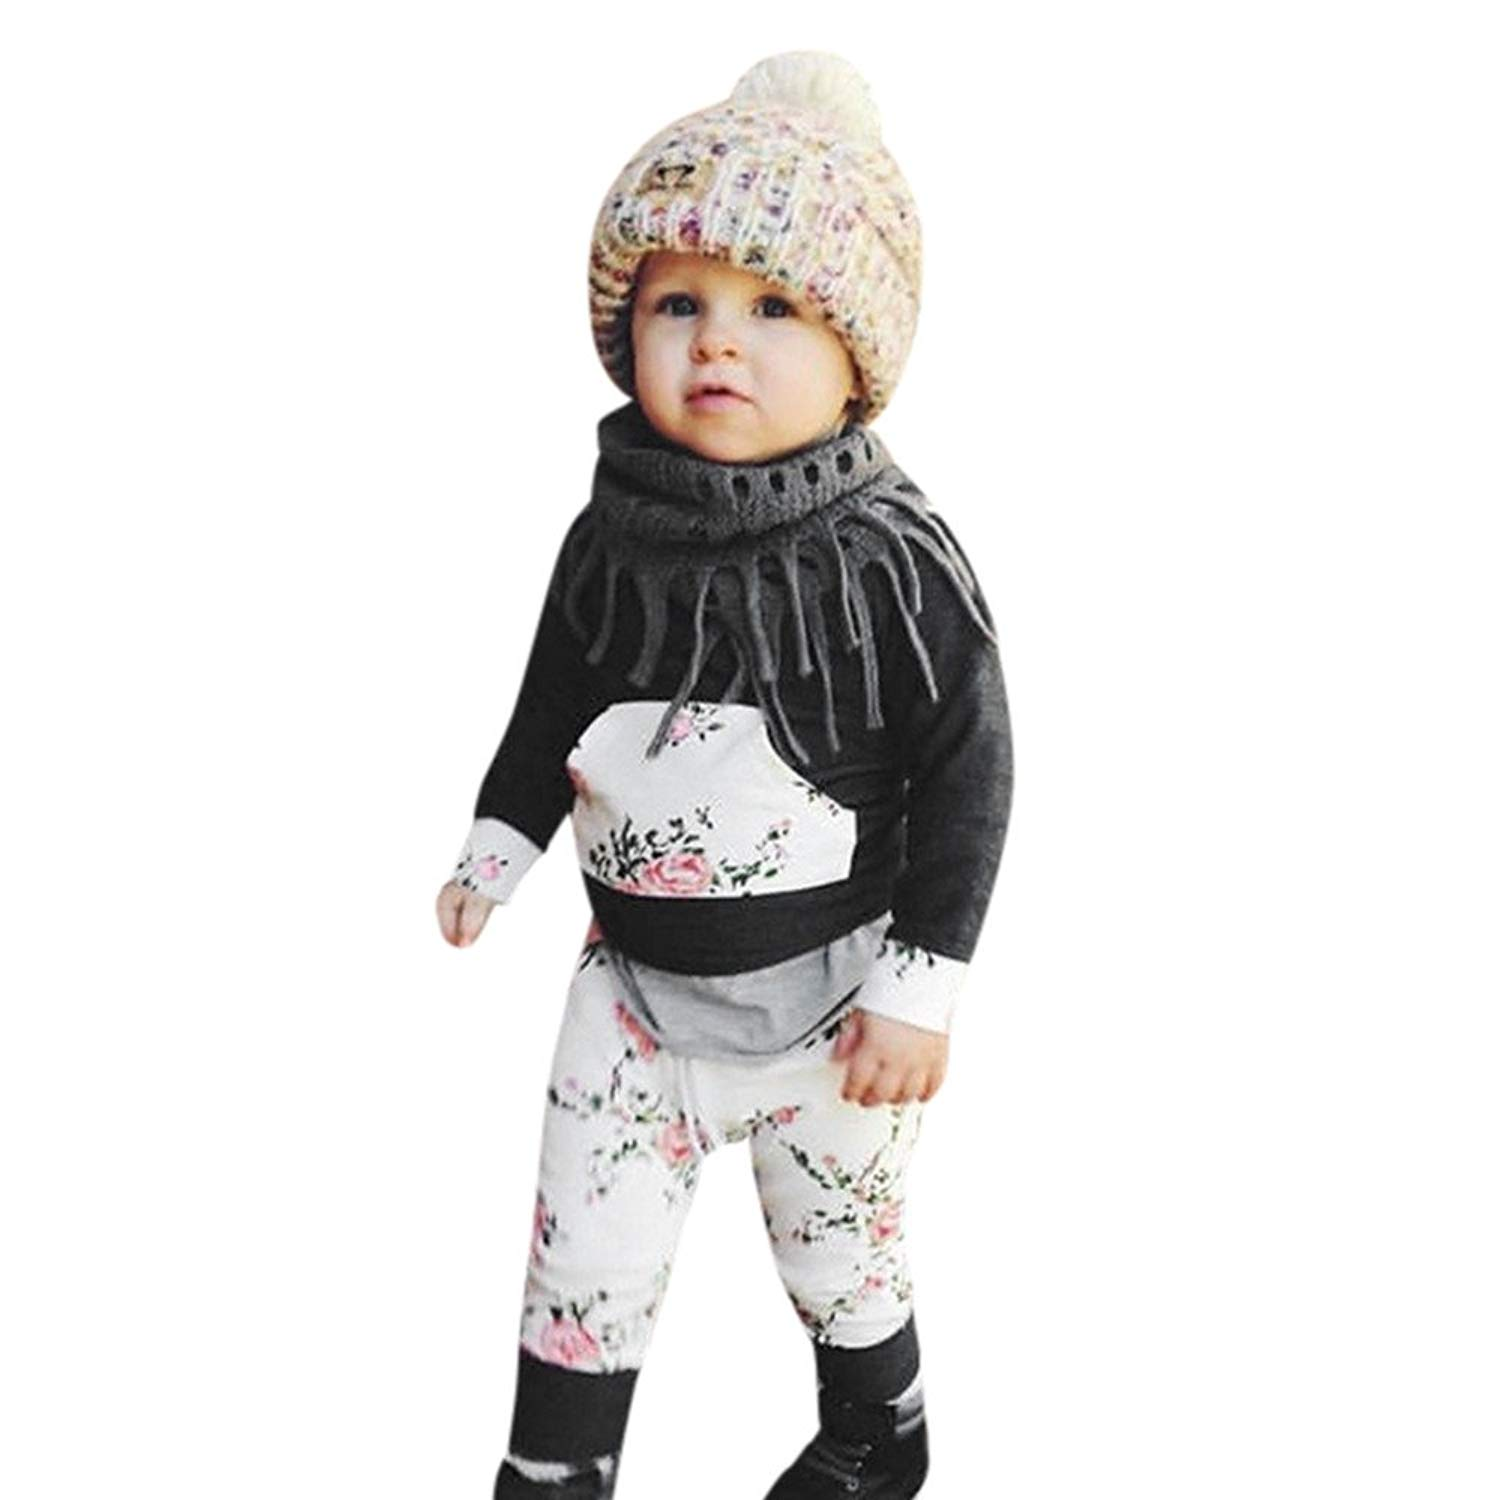 e919677ddaad Get Quotations · 0-24 Months 2pcs Baby Boys Girls Clothes Long Sleeve  Floral Hoodie Tops Pants Sweatshirt